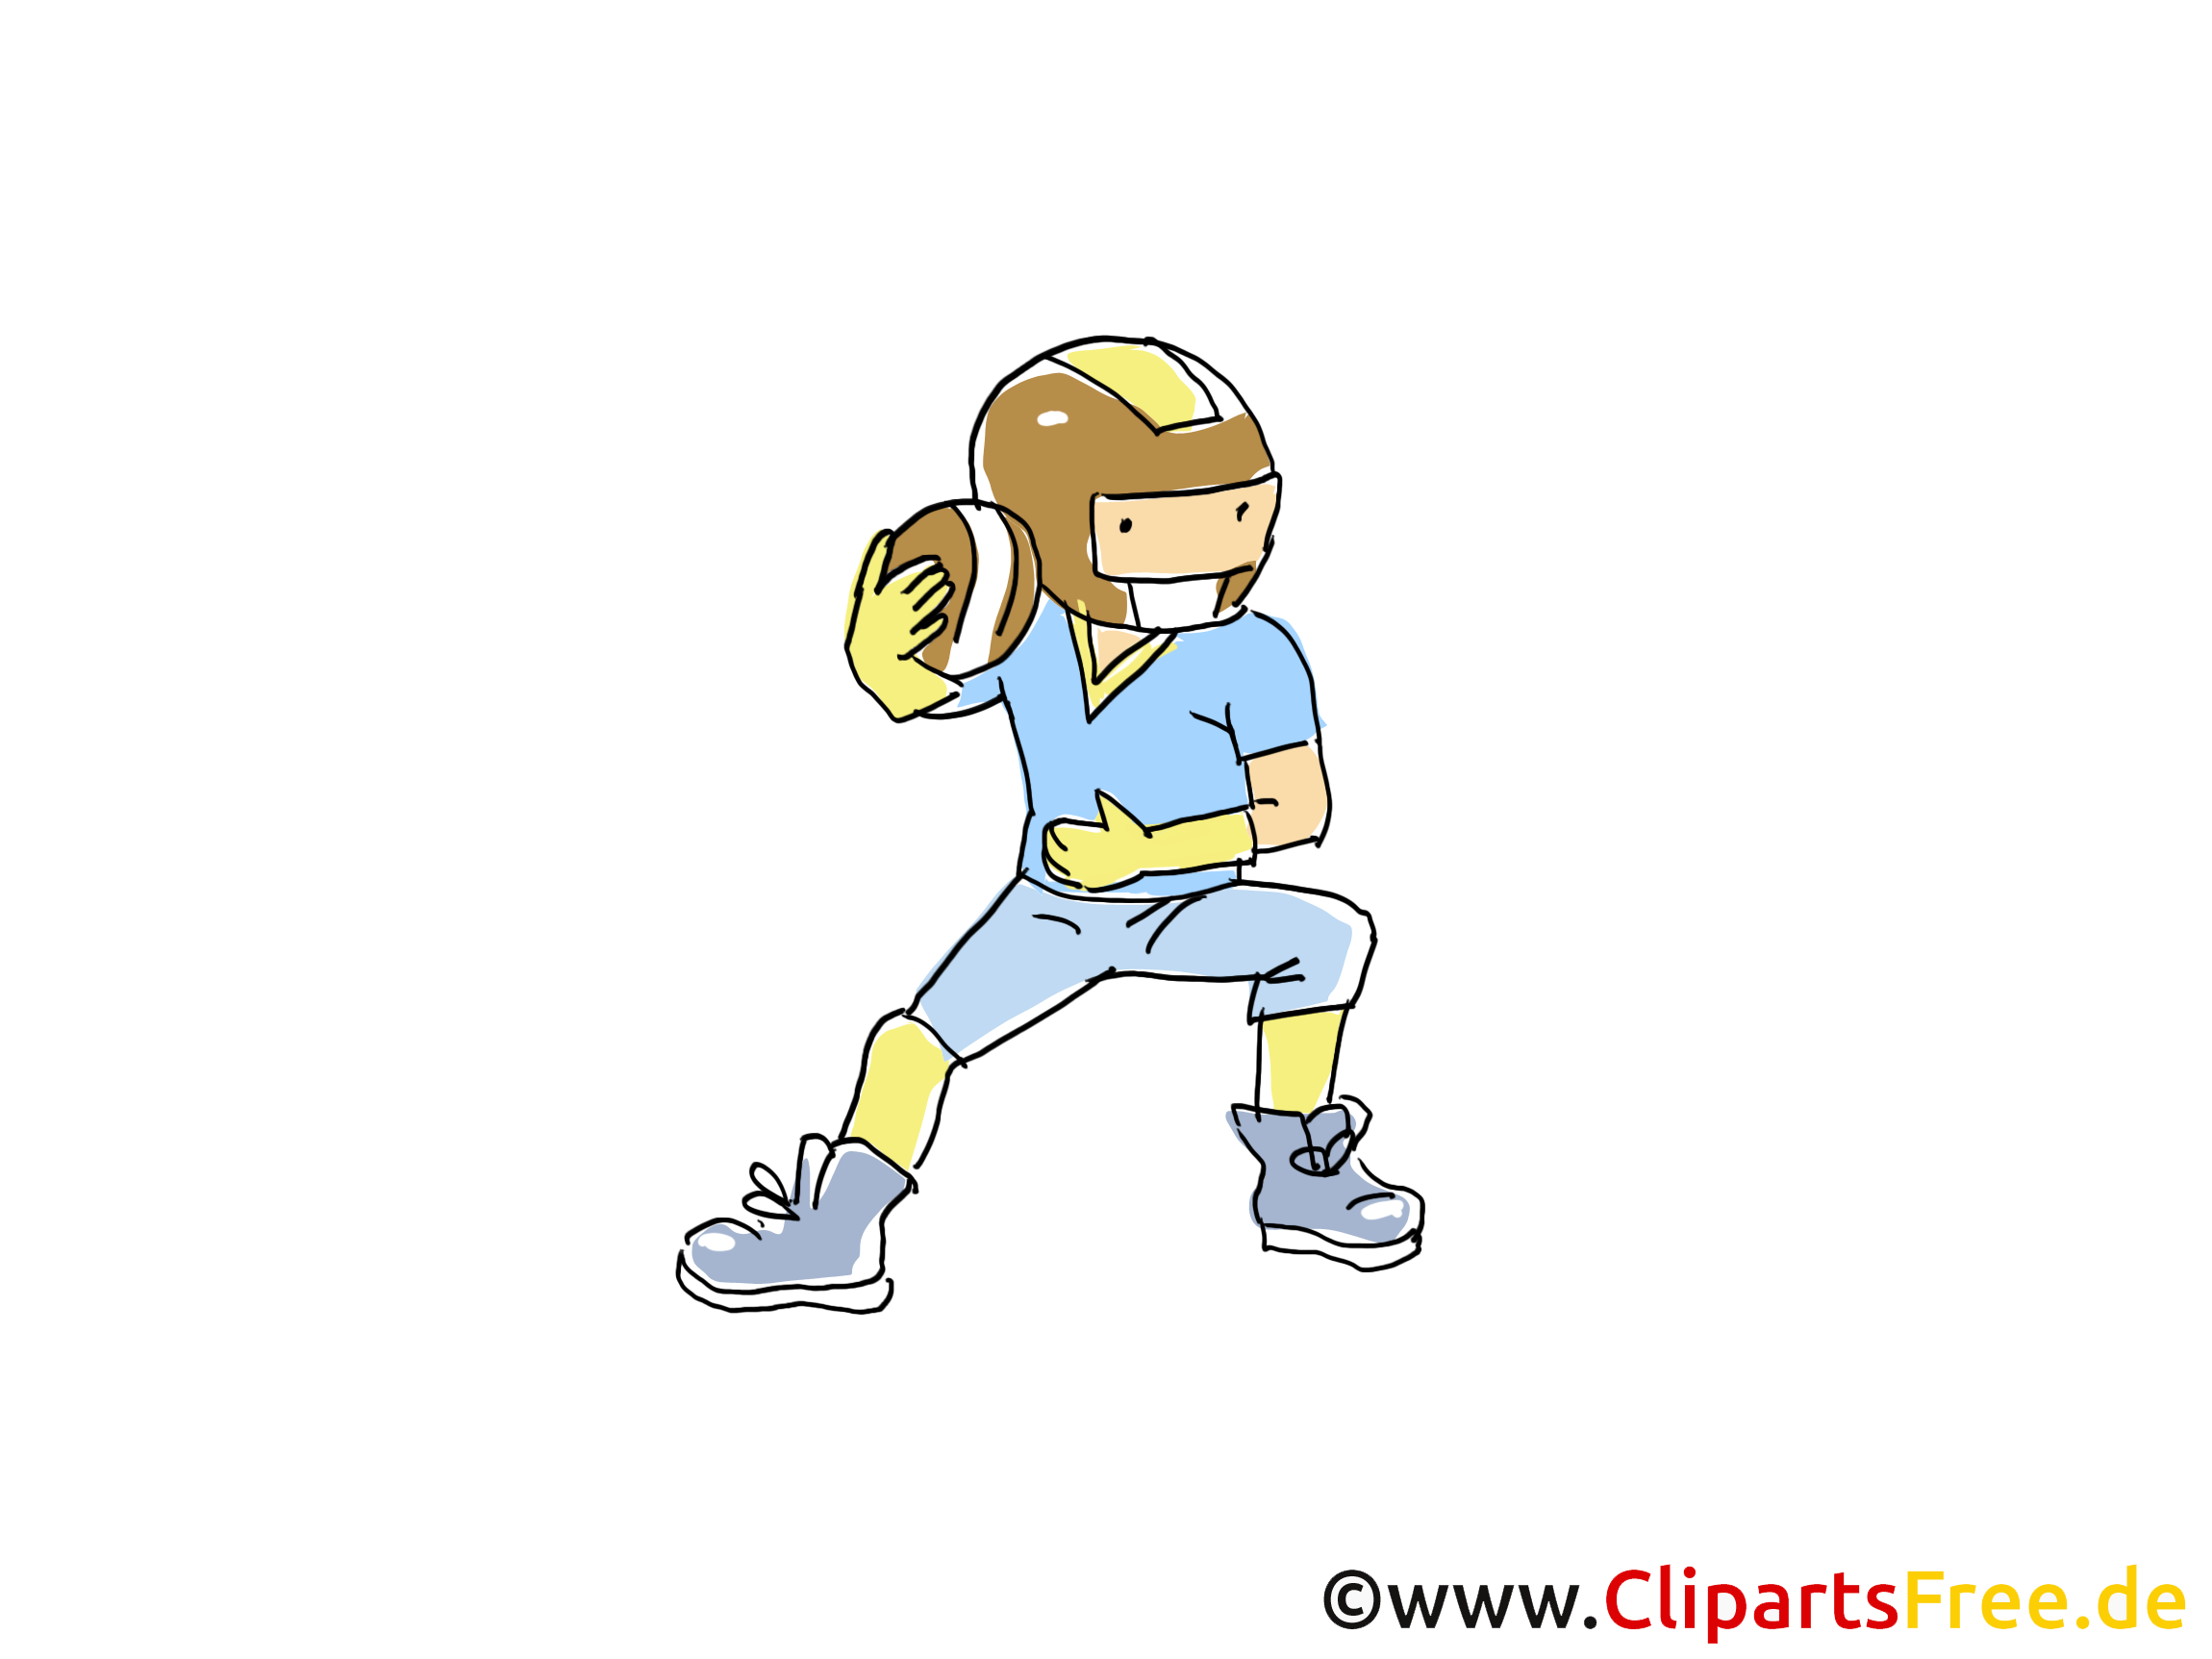 Football américain illustration gratuite